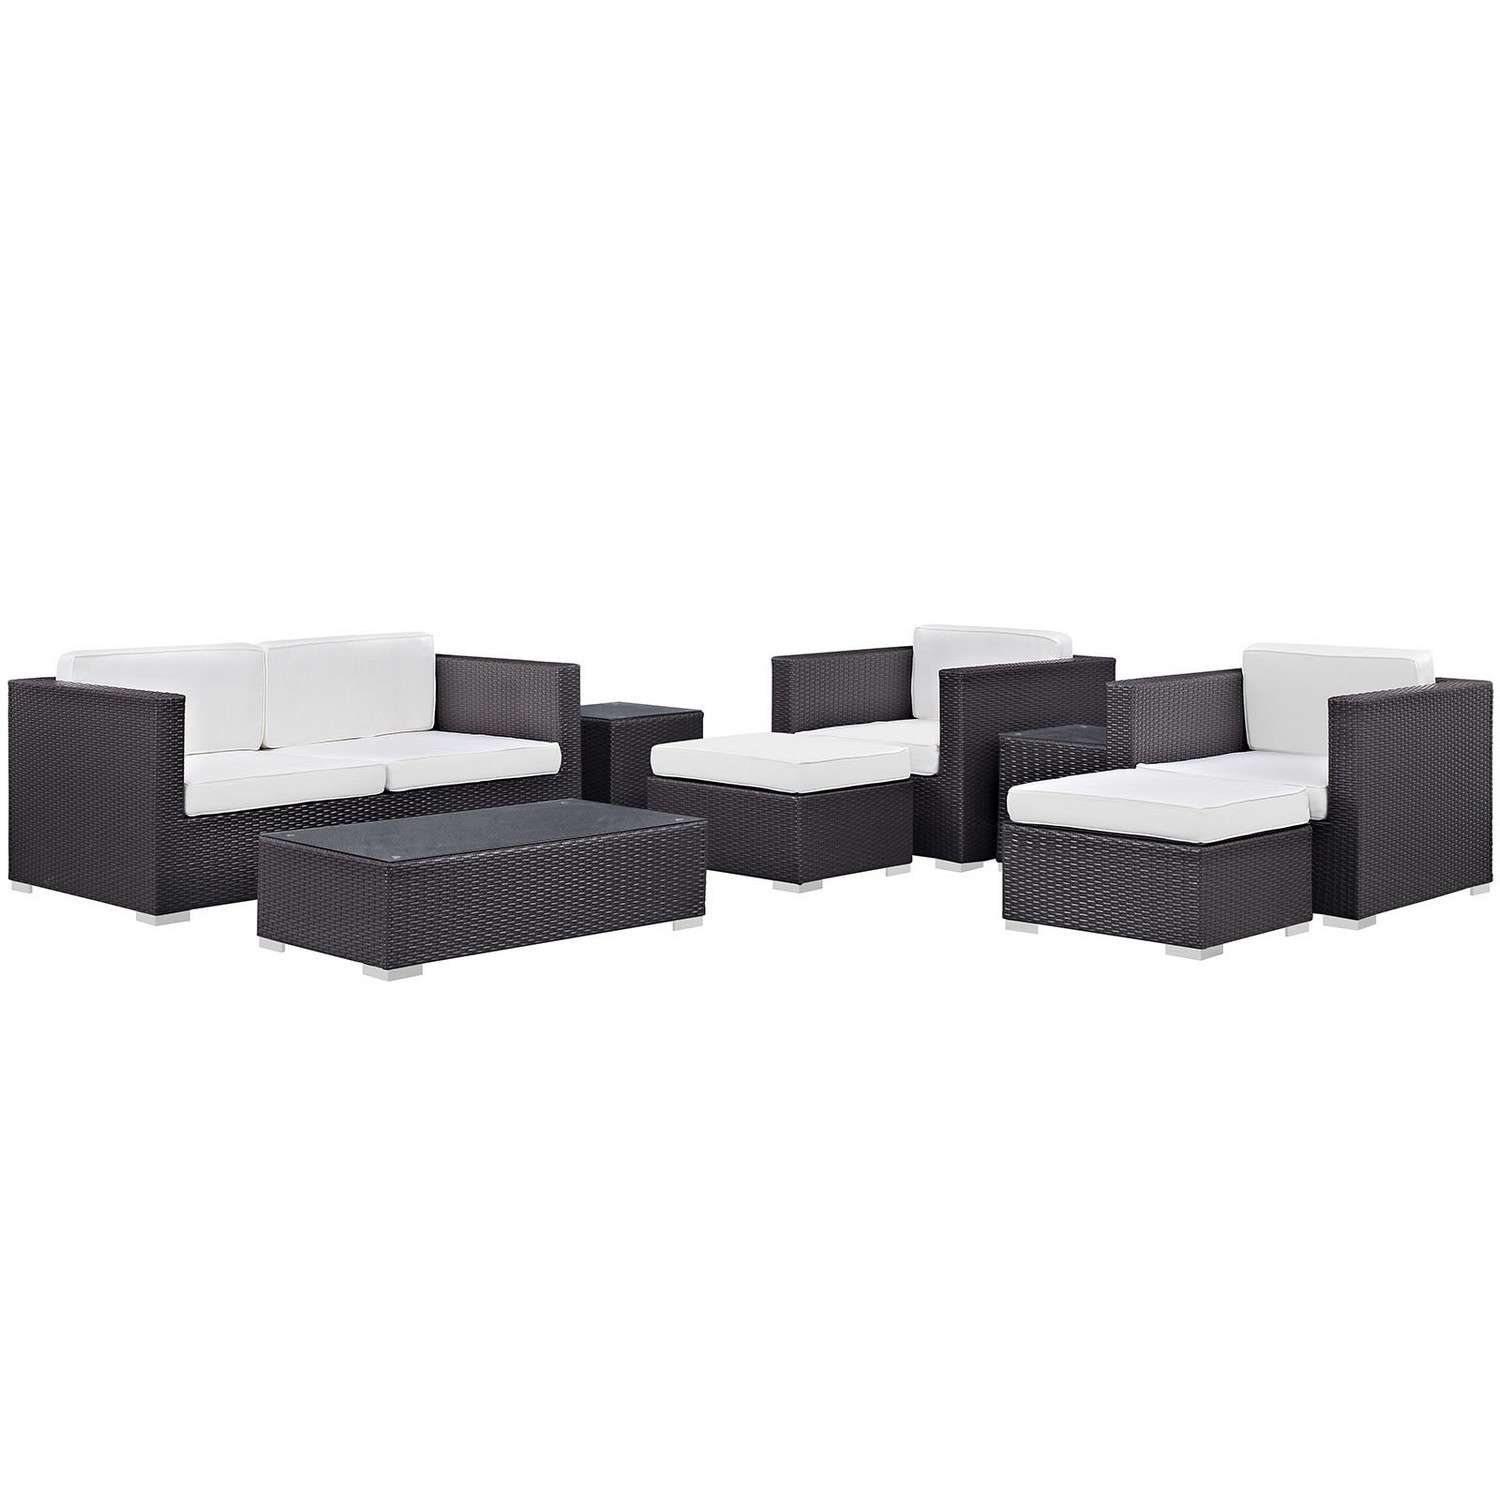 Modway Venice 8 Piece Outdoor Patio Sofa Set - Espresso/White